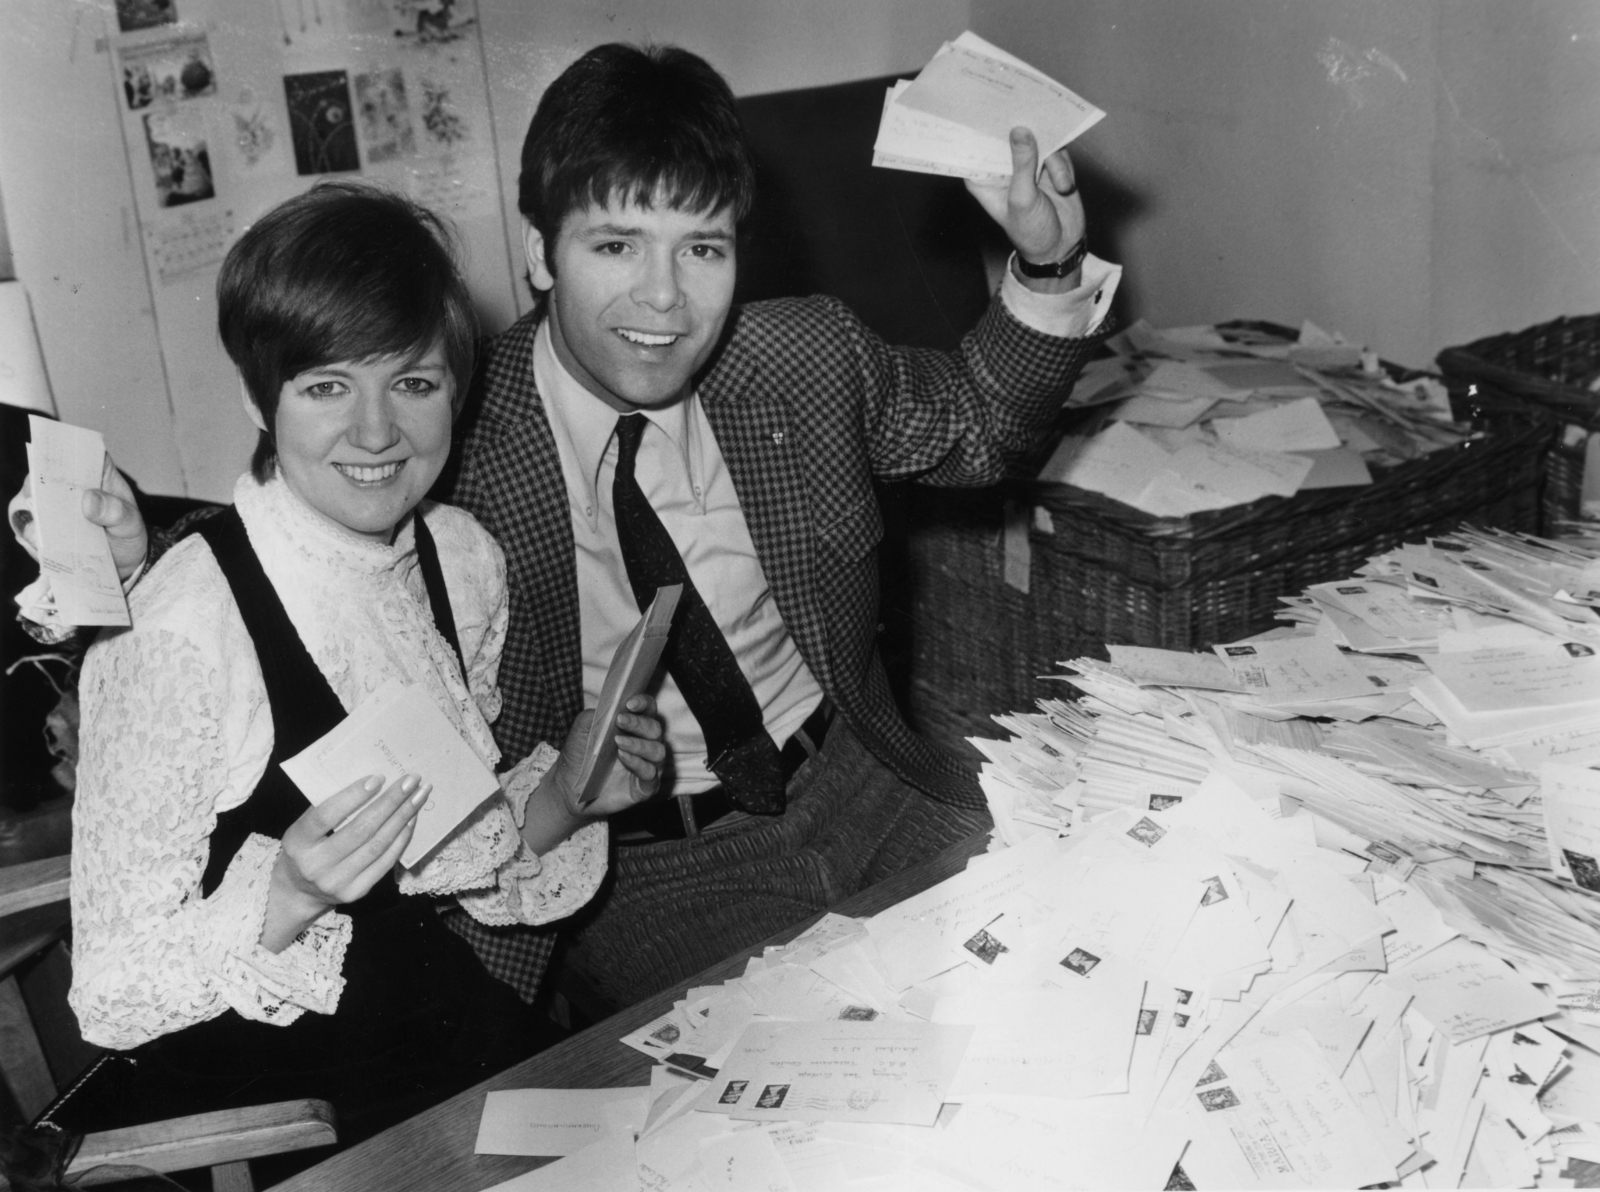 Cilla Black and Cliff Richard's friendship spans decades: In this photo the pair count the 'Song for Europe' votes in 1968